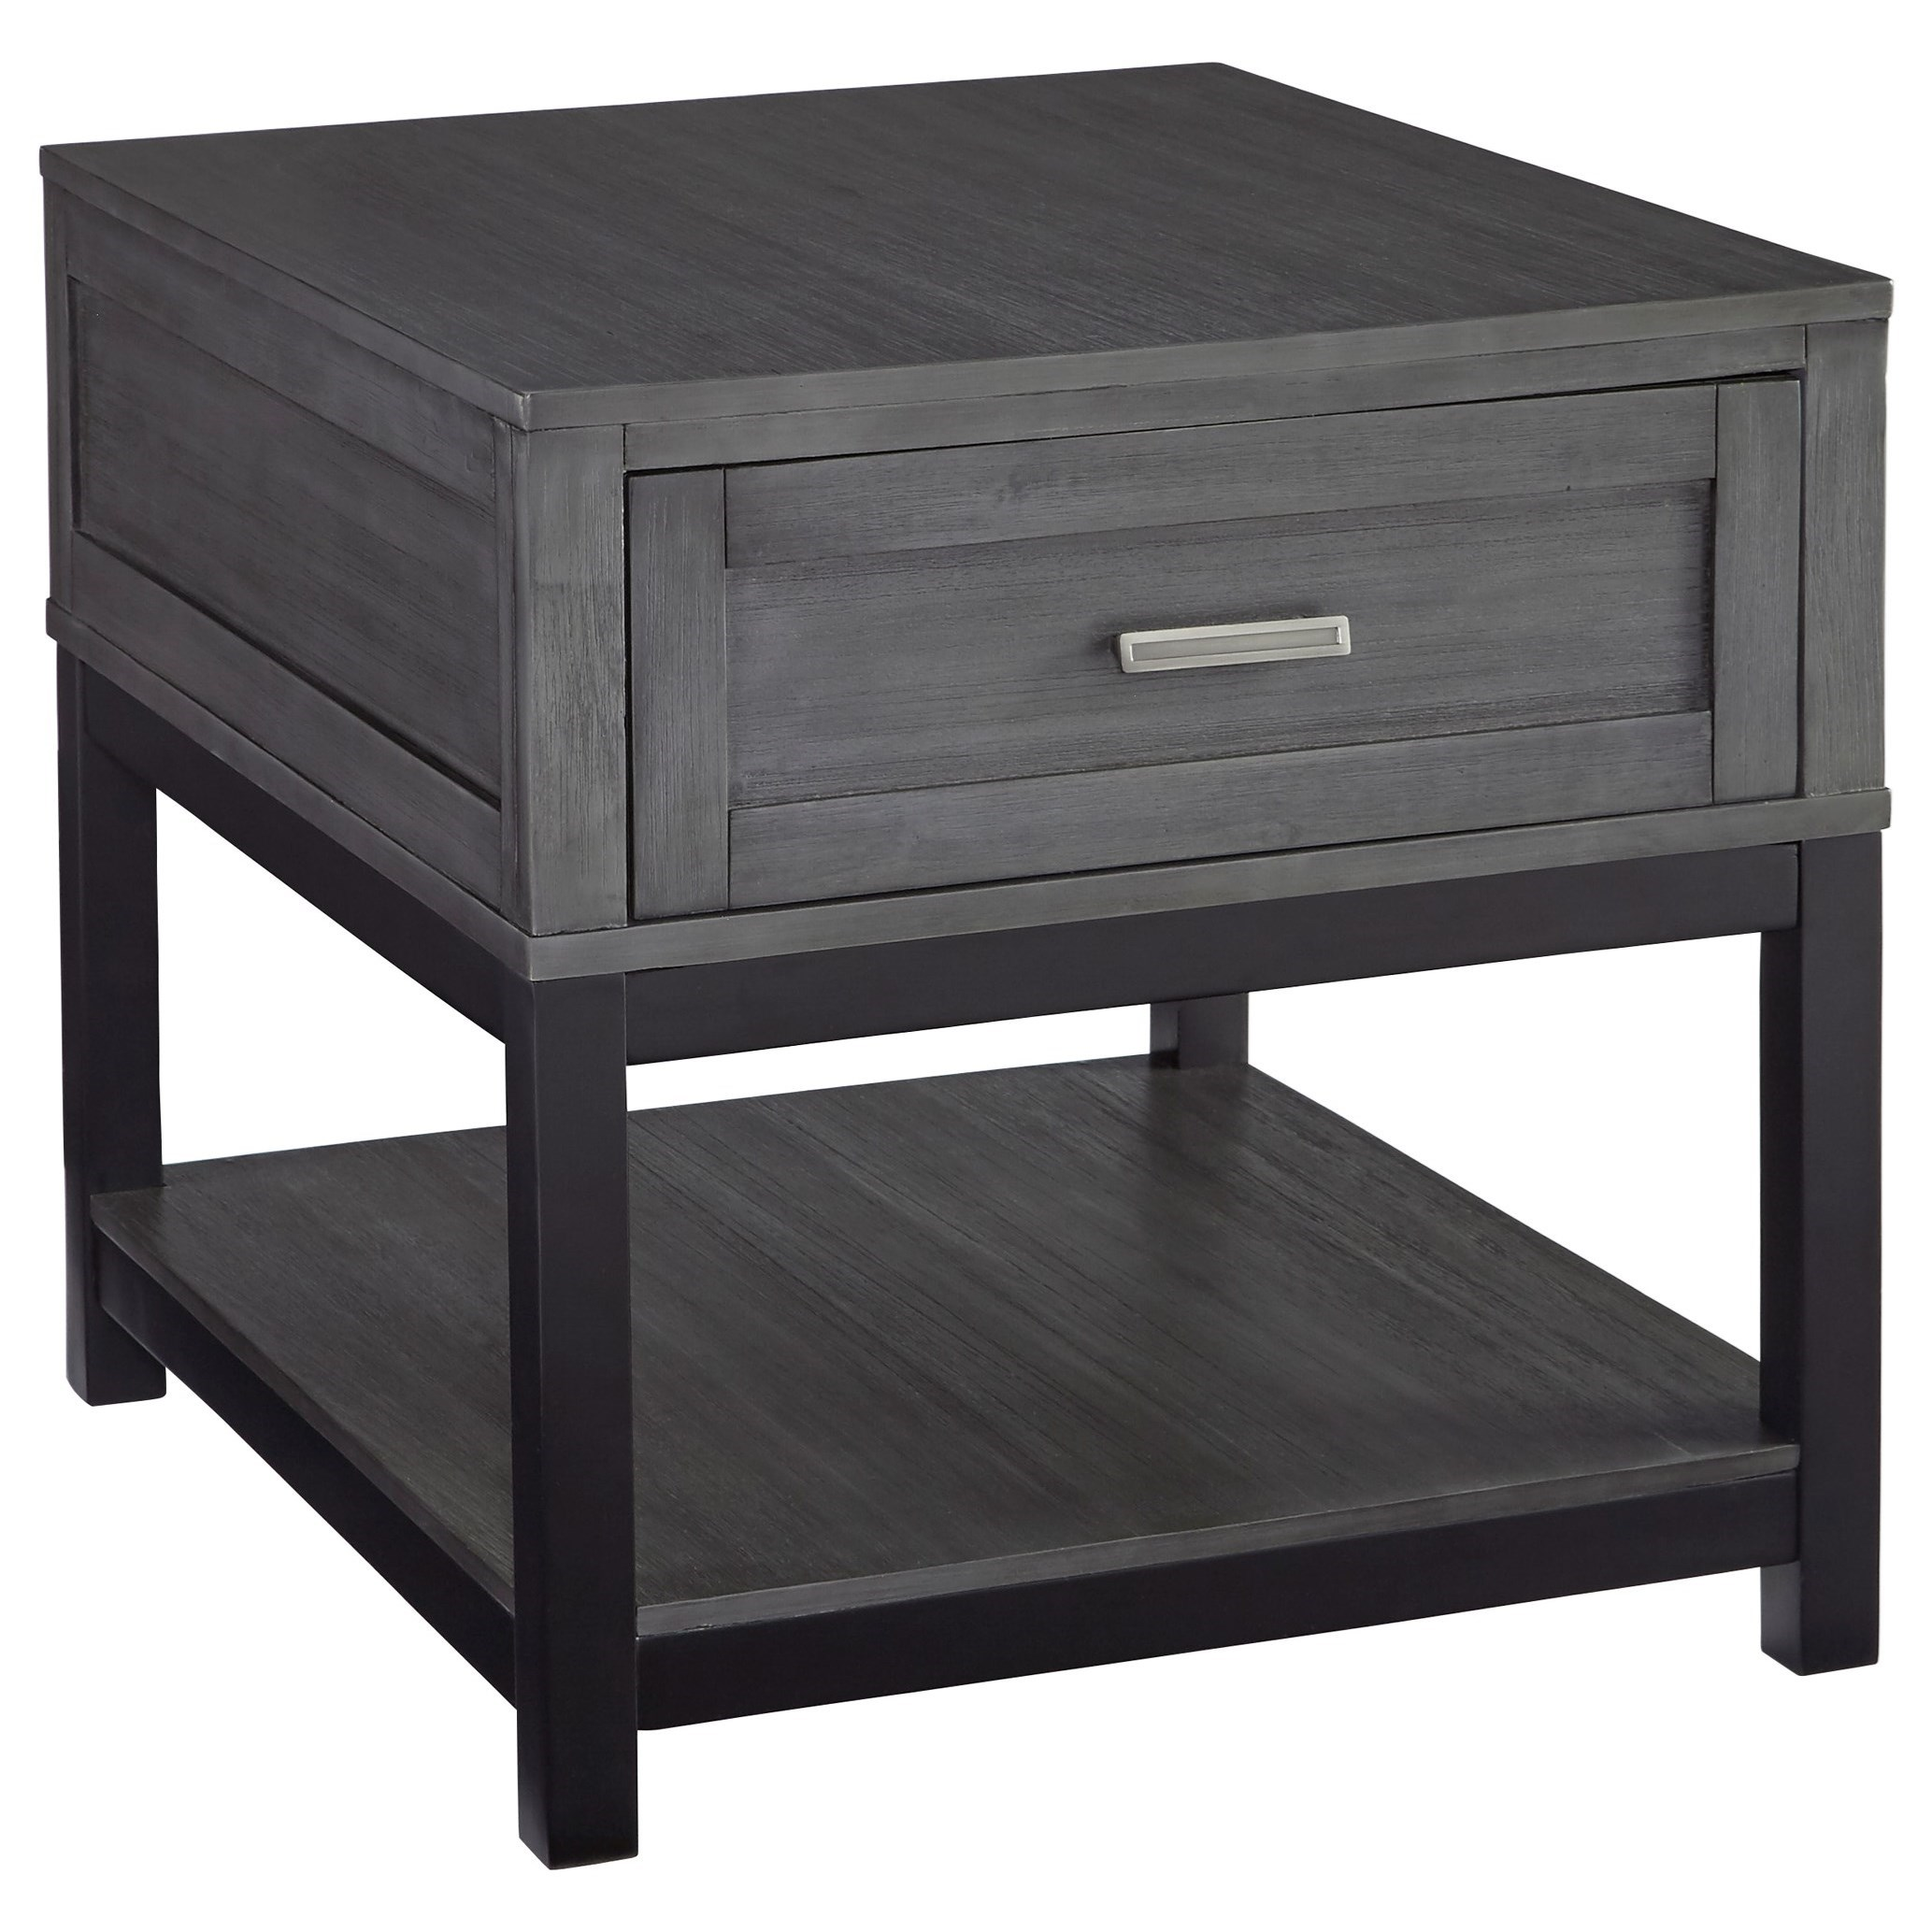 Ashley Signature Design Caitbrook T454 3 Rectangular End Table In Gray Black Finish Dunk Bright Furniture End Tables